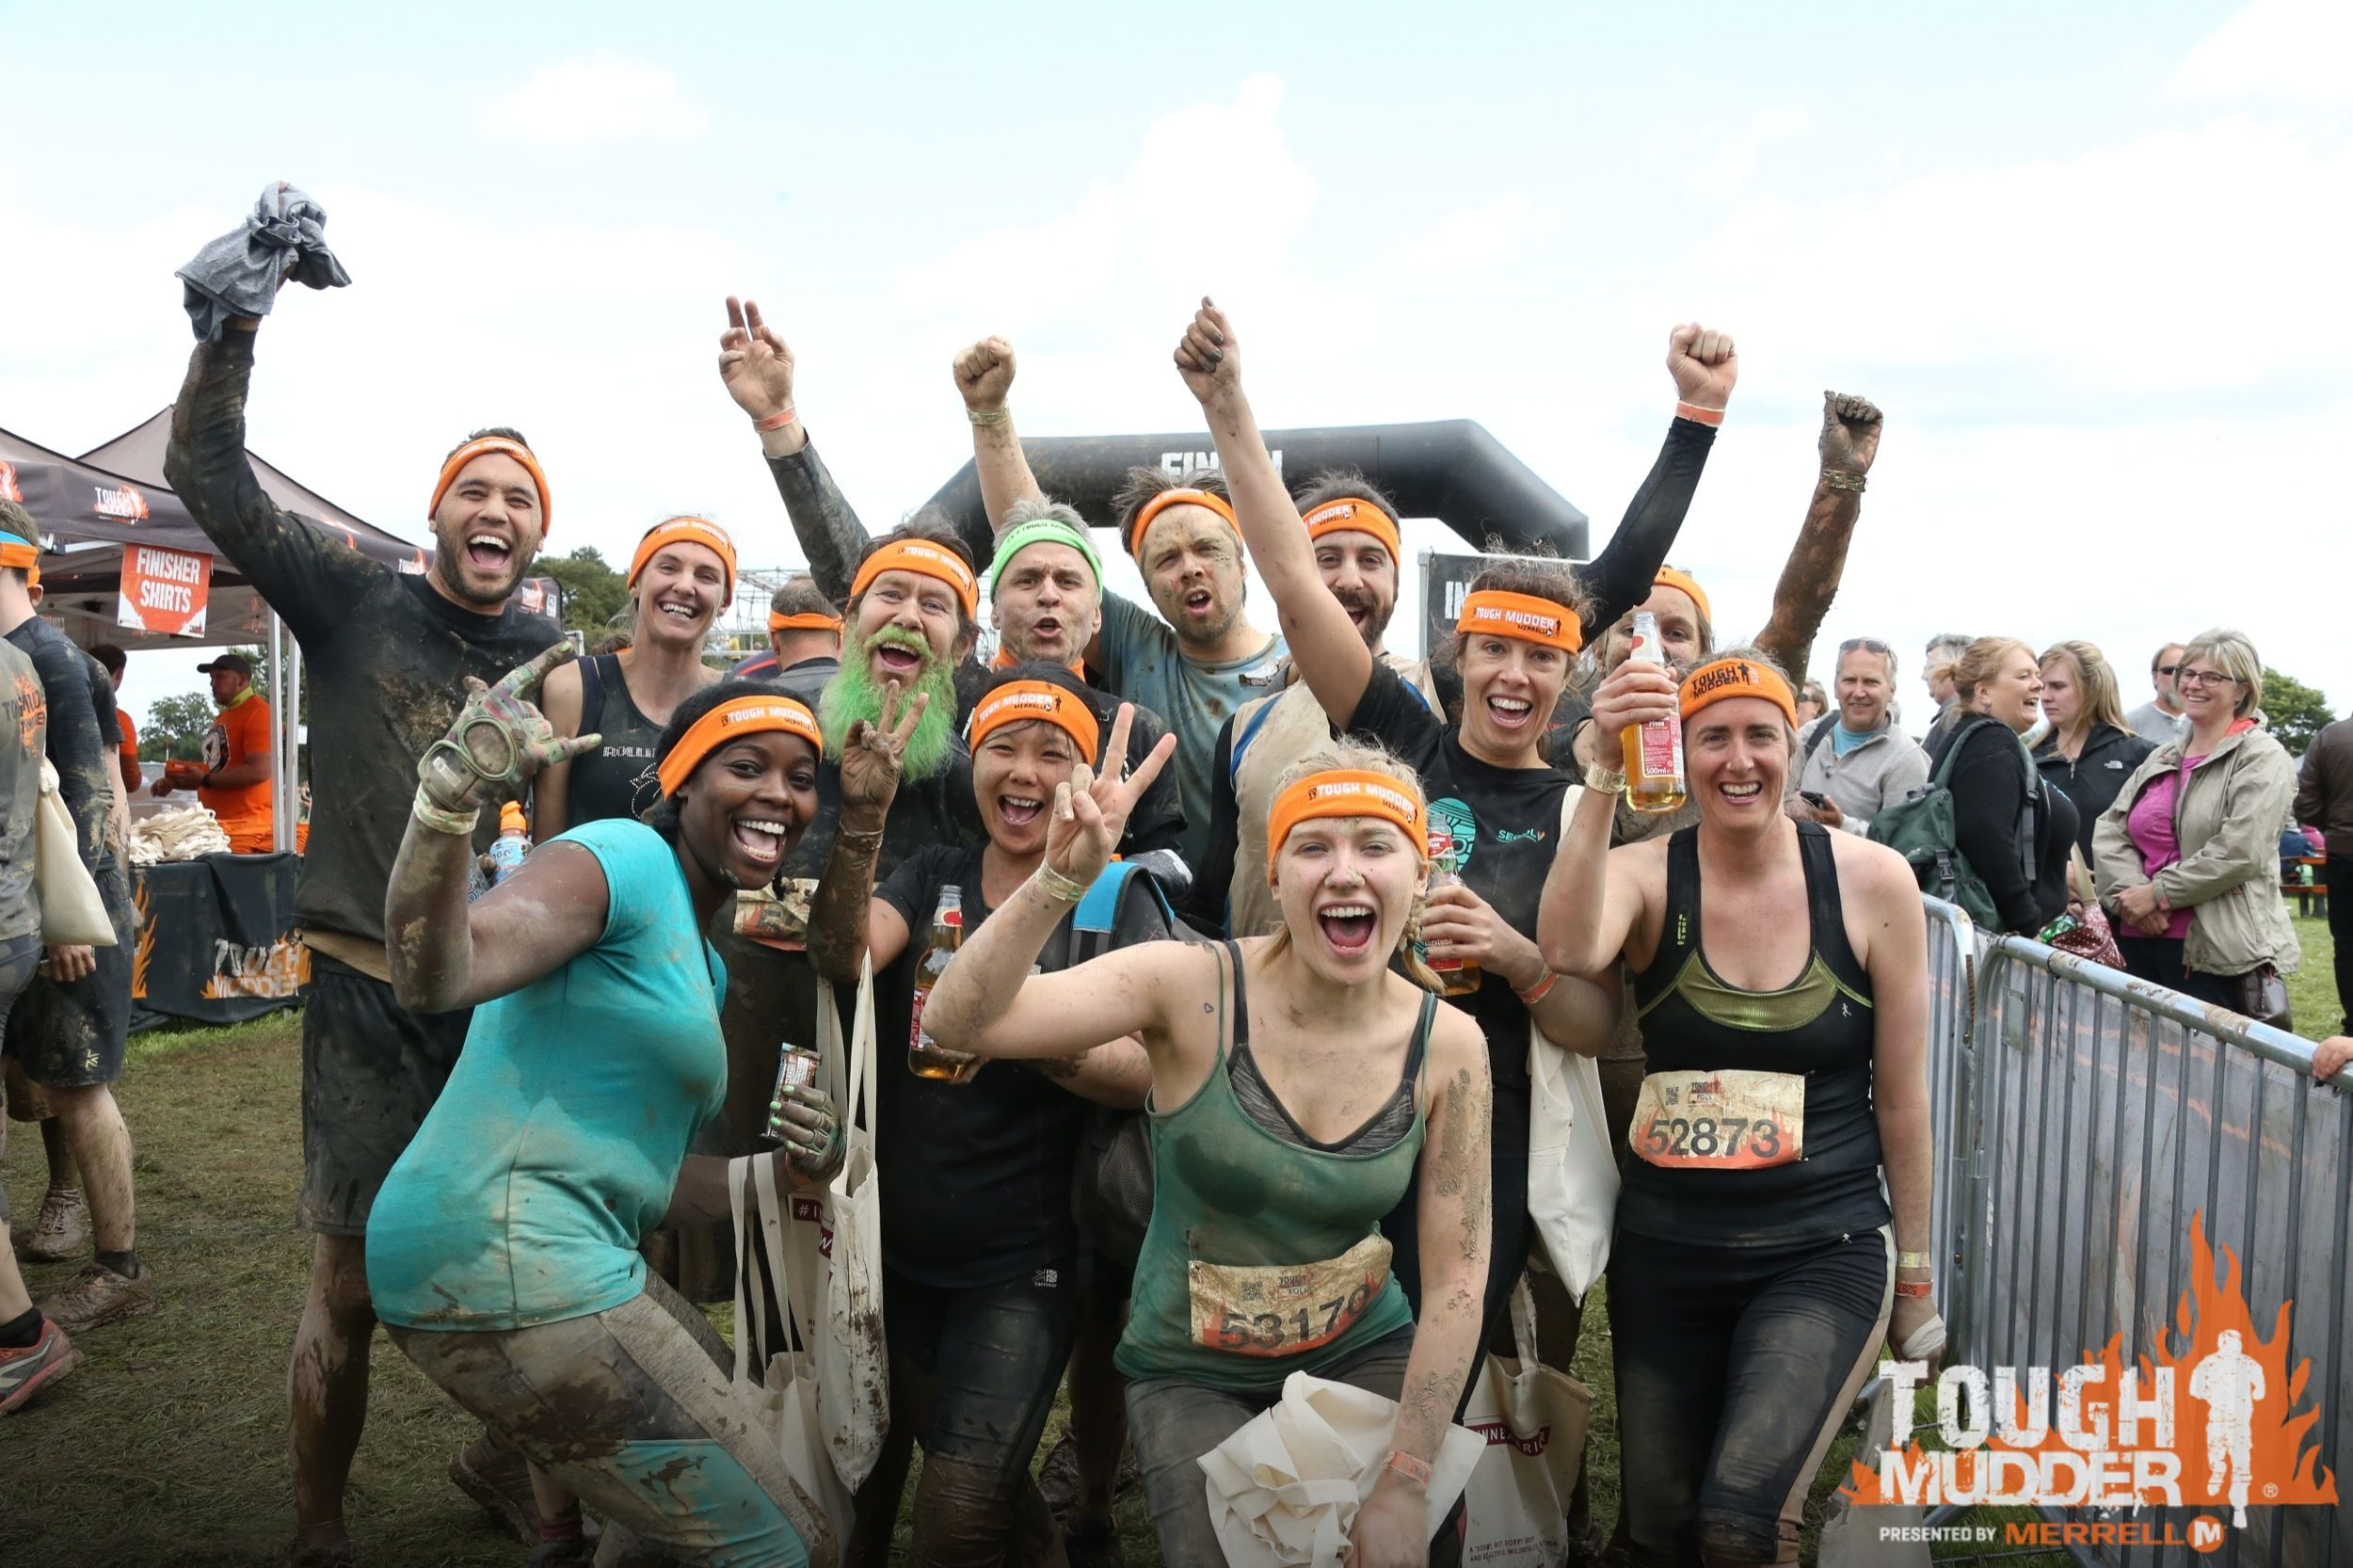 The photos and the videos are all in! Check them out and hear from our team about their #ToughMudder experience that benefitted nonprofits for the homeless. #companyculture #philanthropy